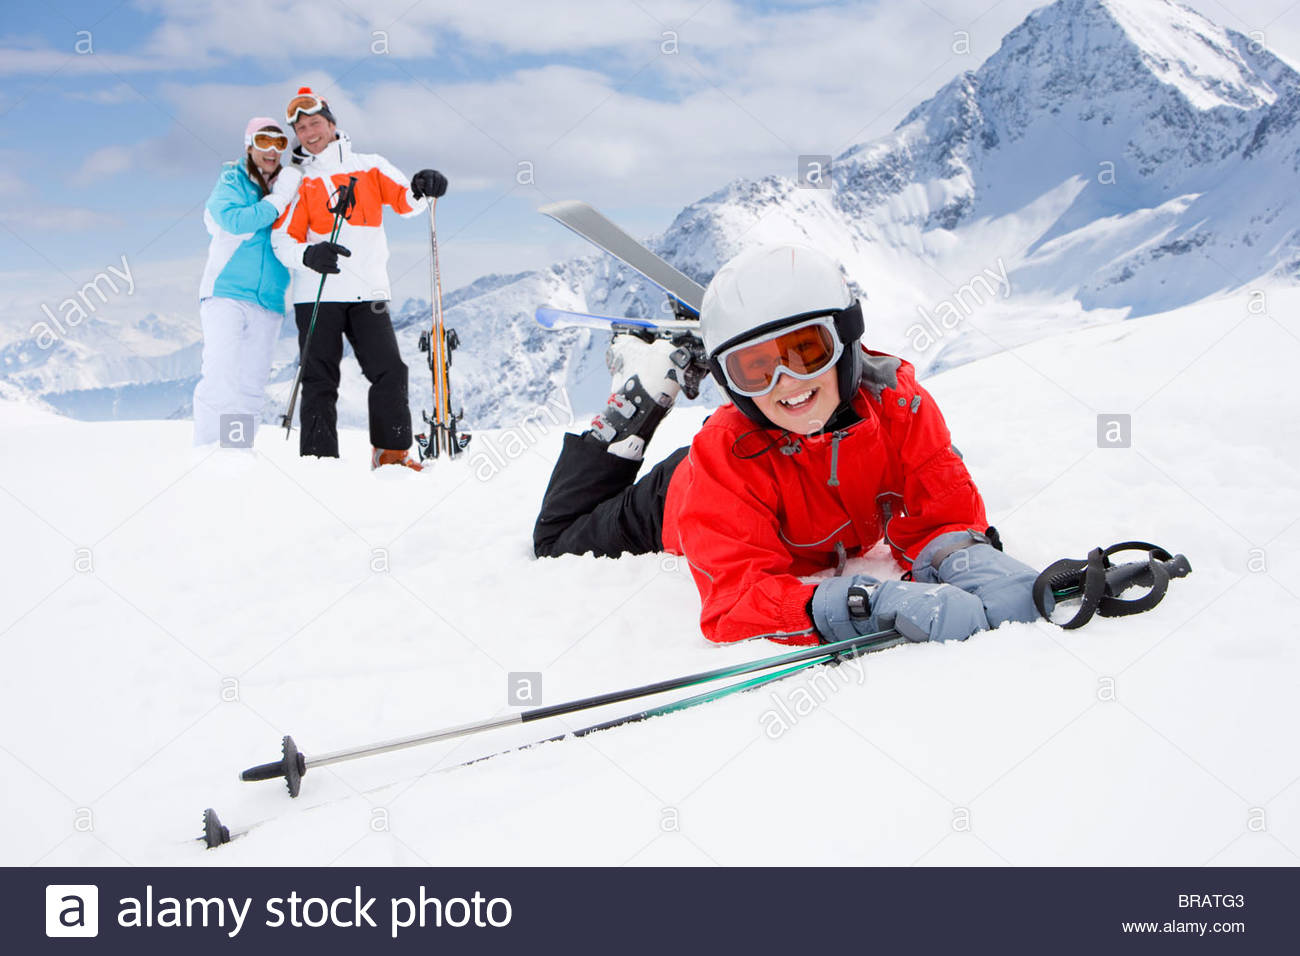 Boy on skis falling in snow while parents watch - Stock Image